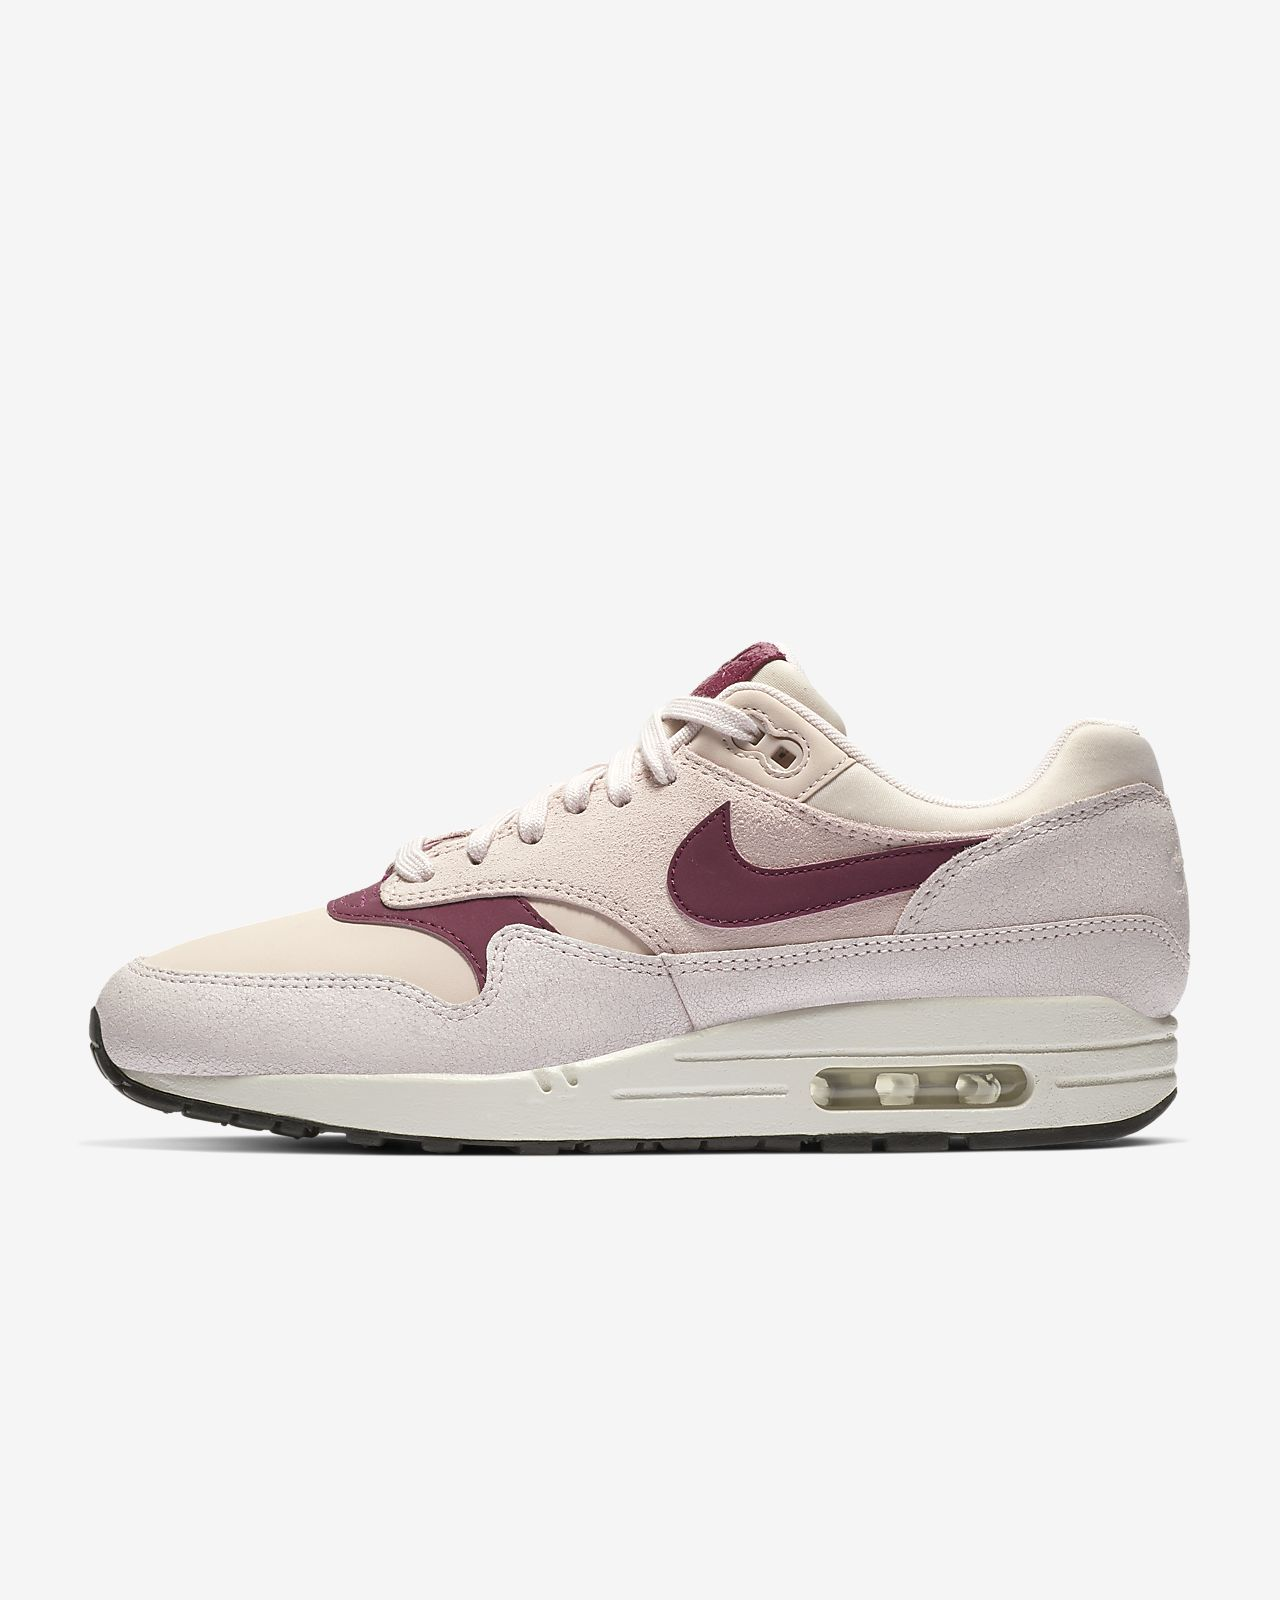 official photos 88b29 c5211 Women s Shoe. Nike Air Max 1 Premium